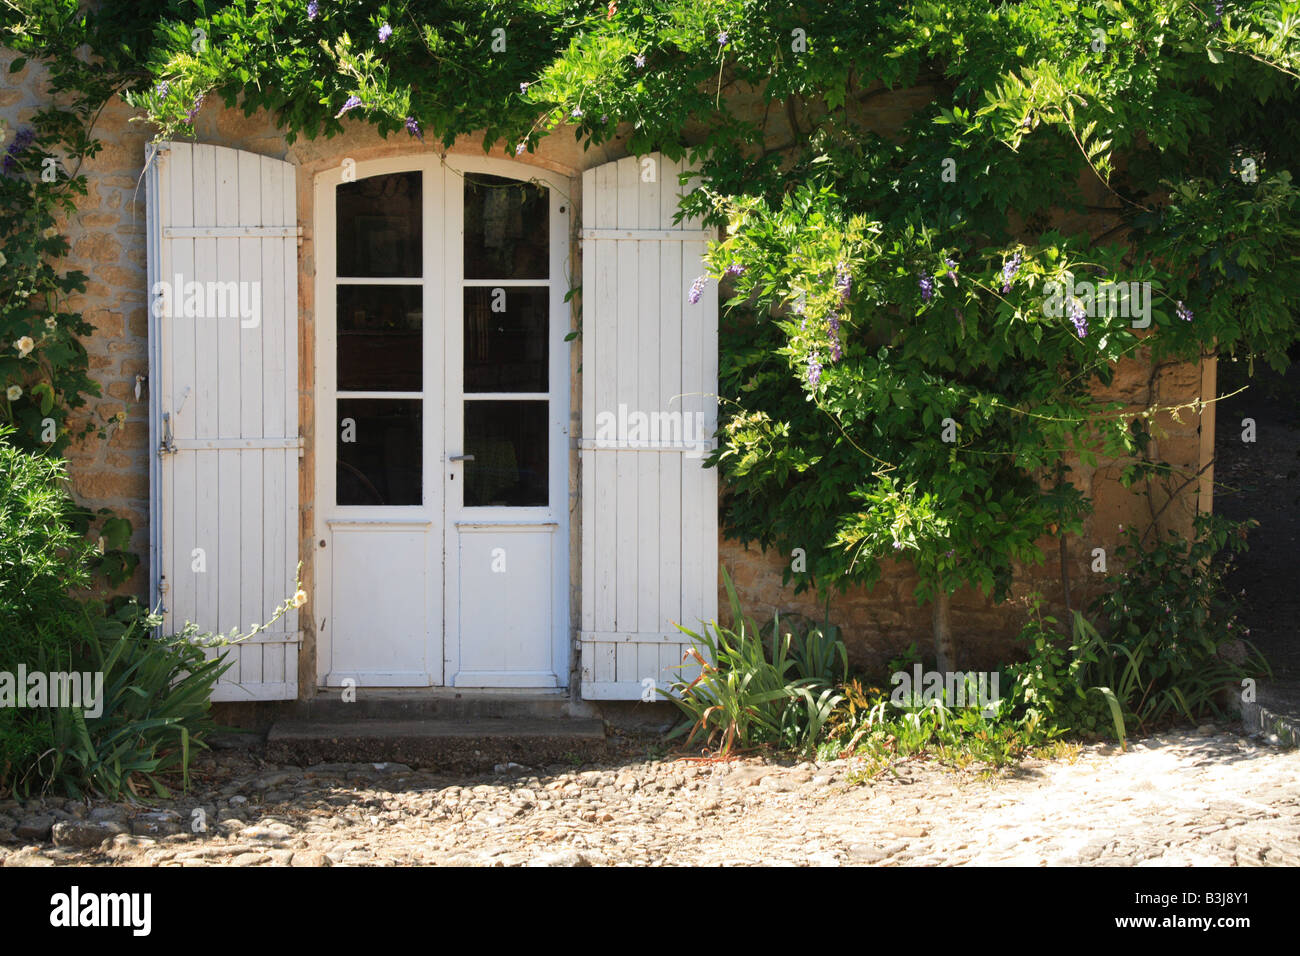 Limeuil village French doors Dordogne France & Limeuil village French doors Dordogne France Stock Photo: 19456501 ...